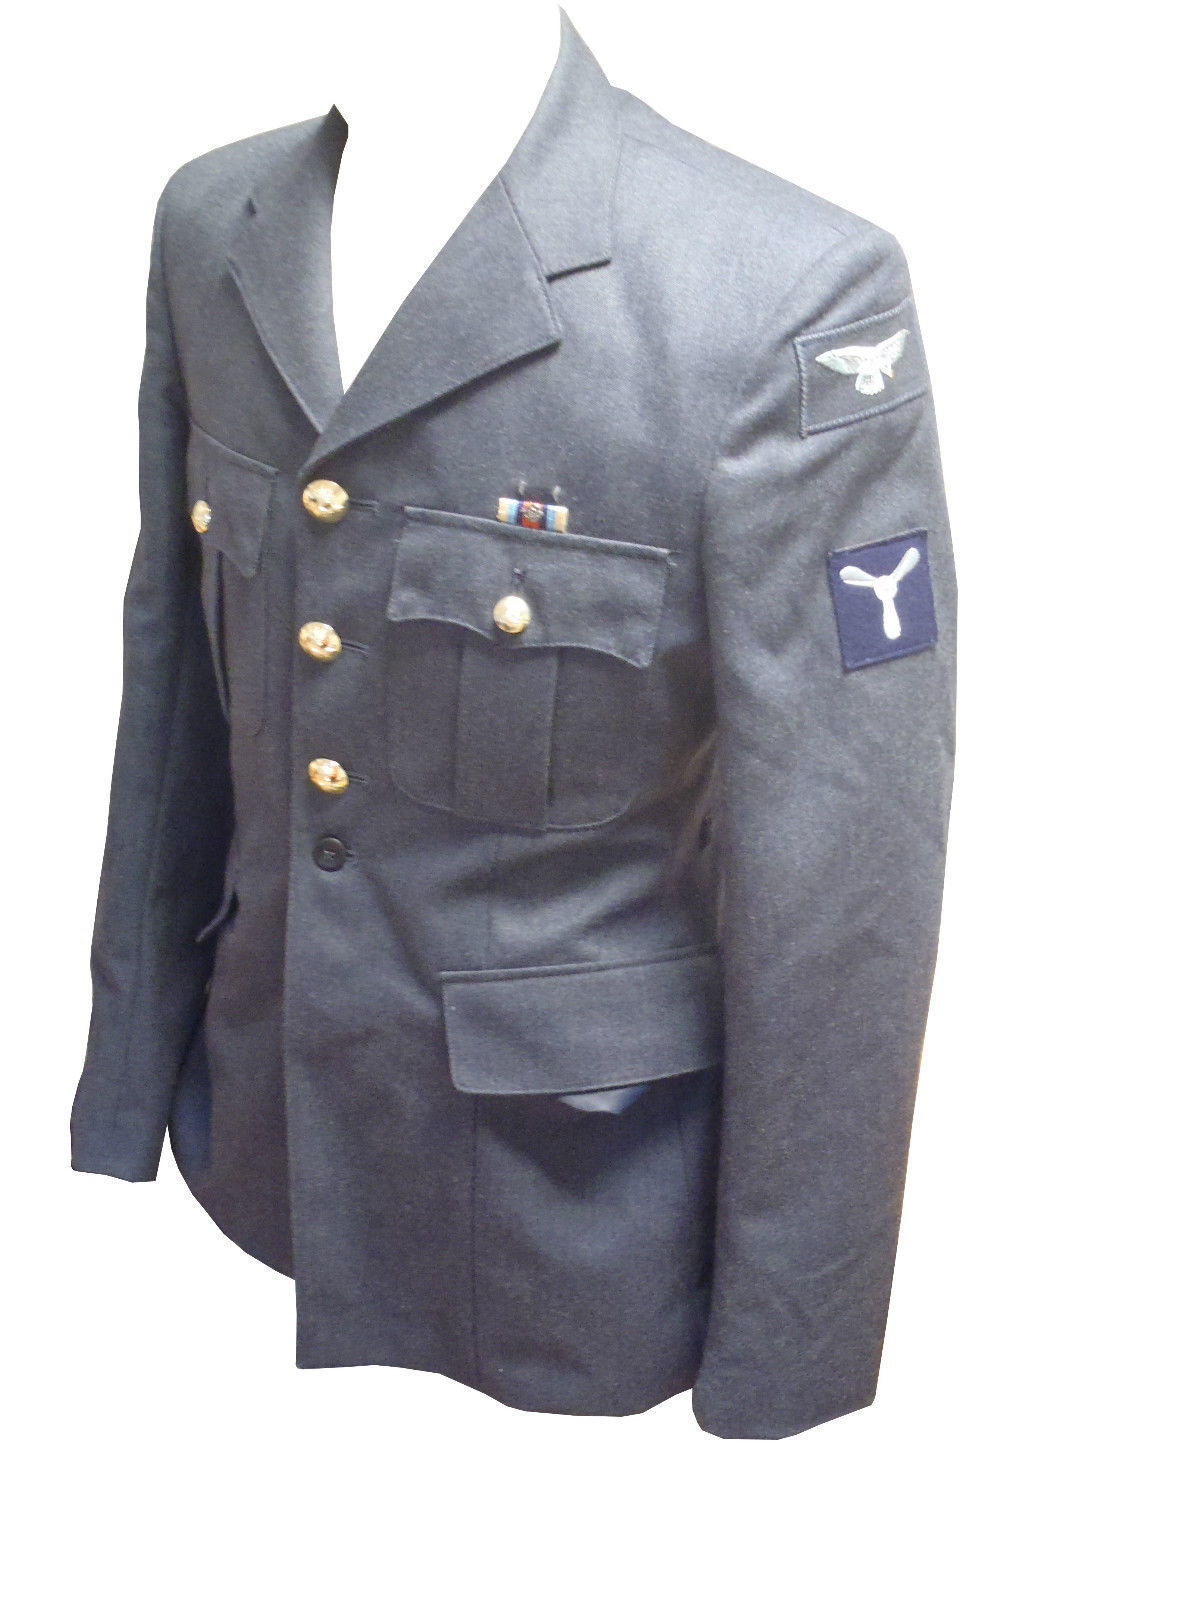 Lot 32 - 10x RAF TUNIC + 10x RAF TROUSERS - GRADE 1 USED - MIXED SIZES